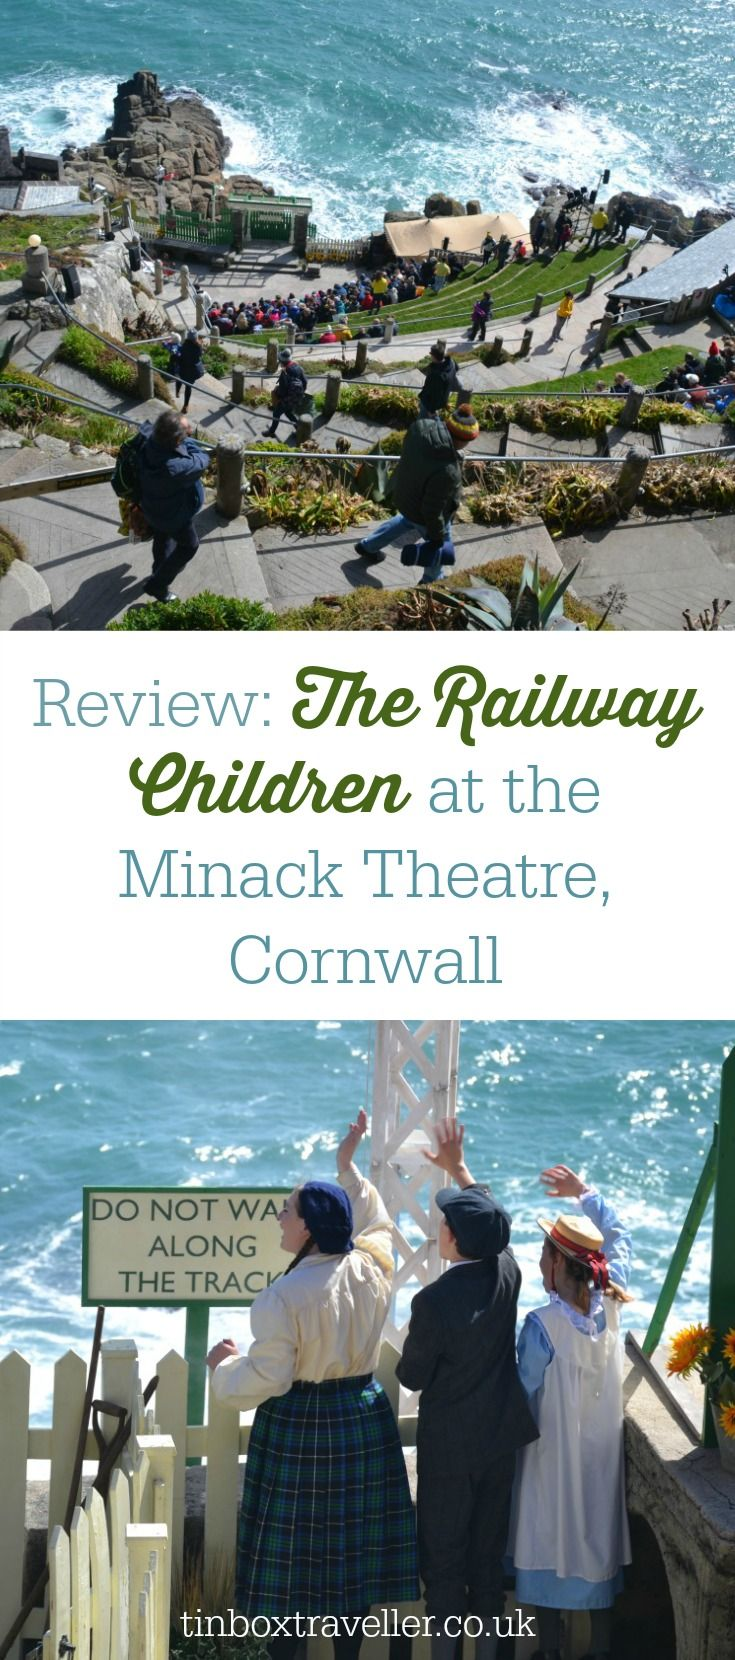 A review of the opening matinee performance of The Railway Children at the Minack Theatre in Cornwall - a cliff top, open air theatre venue with amazing views of the Atlantic #Cornwall #outdoortheatre #culturedkids #loveCornwall #theatre